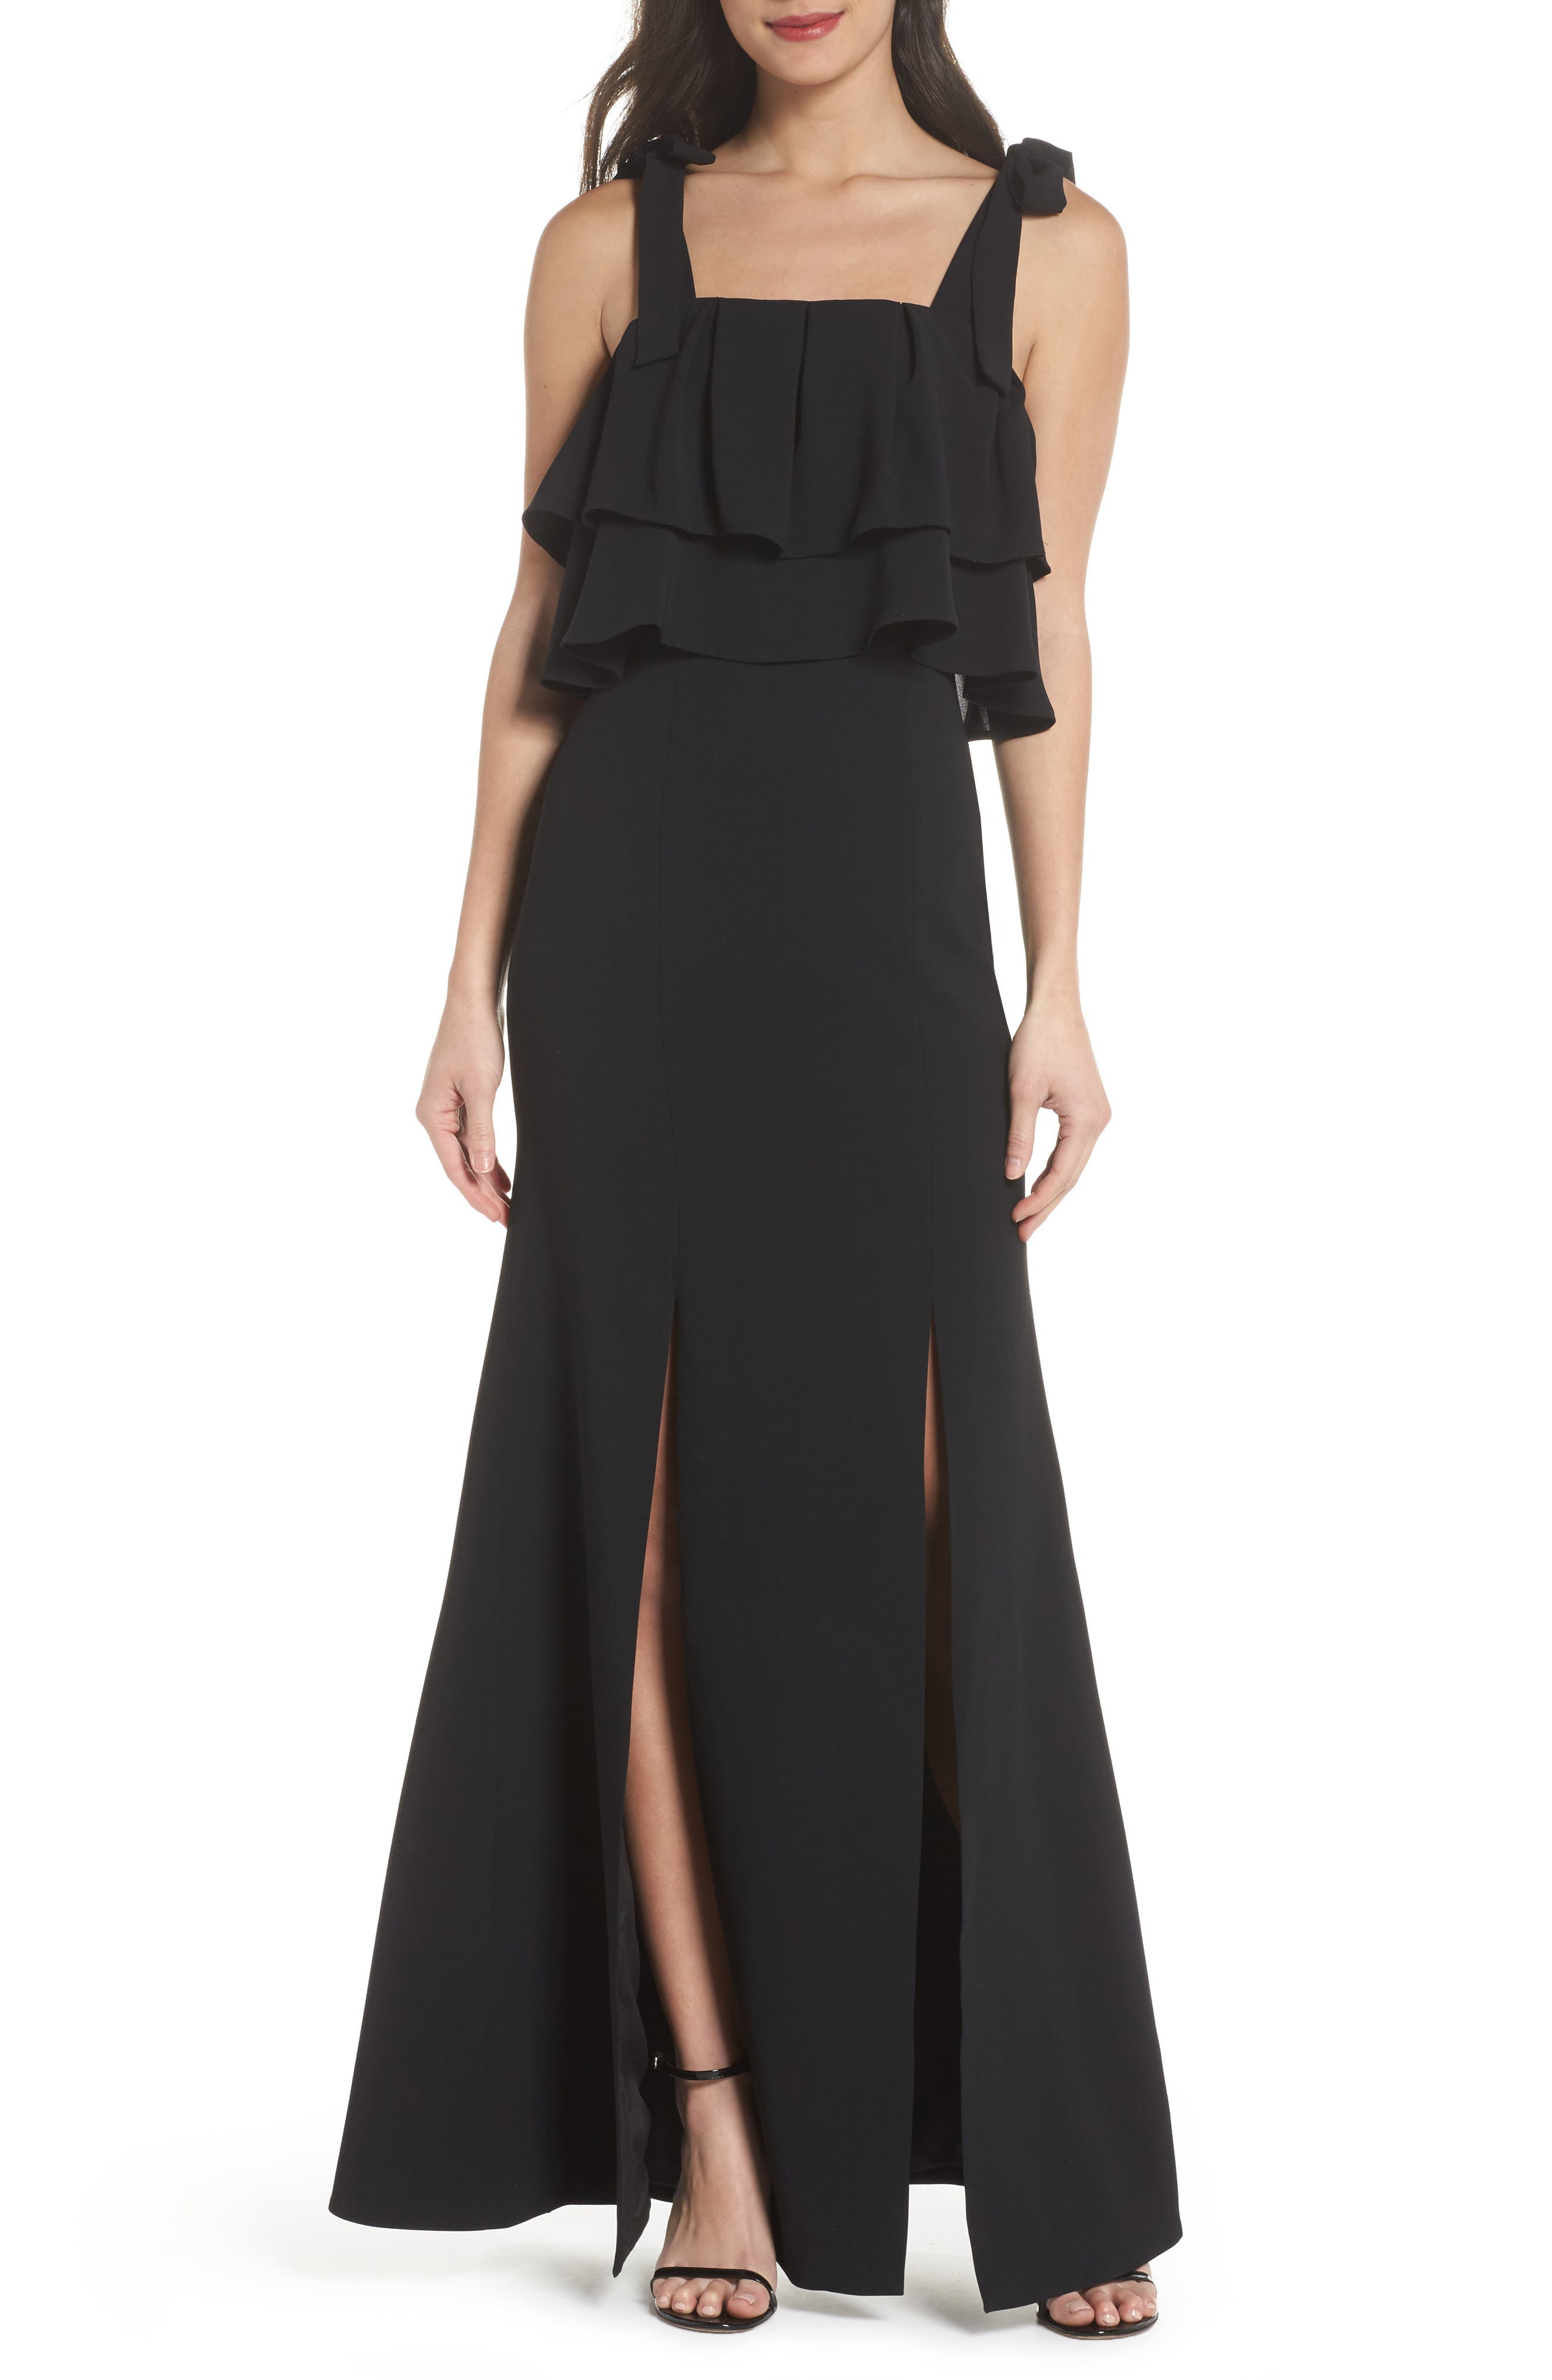 Be About You Ruffle Bodice Gown,                             Main thumbnail 1, color,                             Black